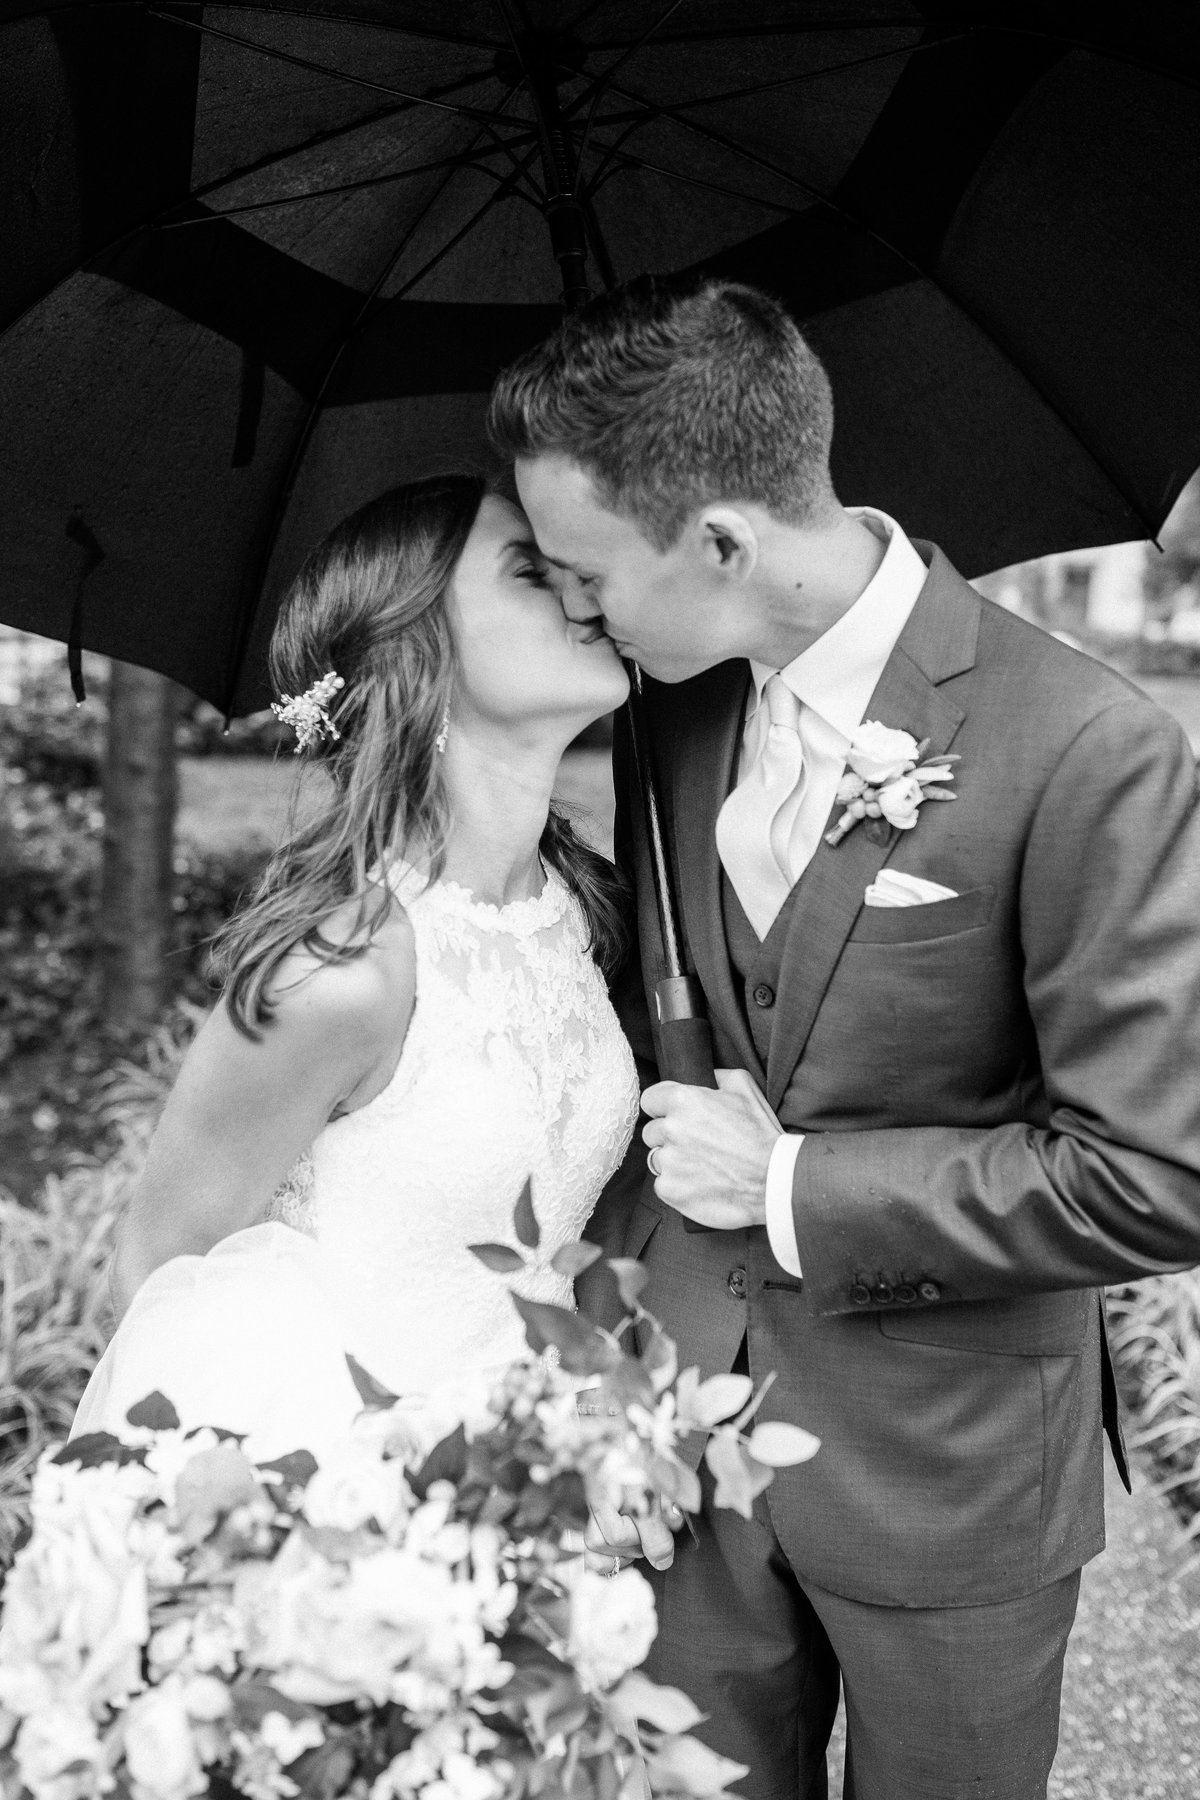 A bride and groom kiss under an umbrella on their rainy wedding day